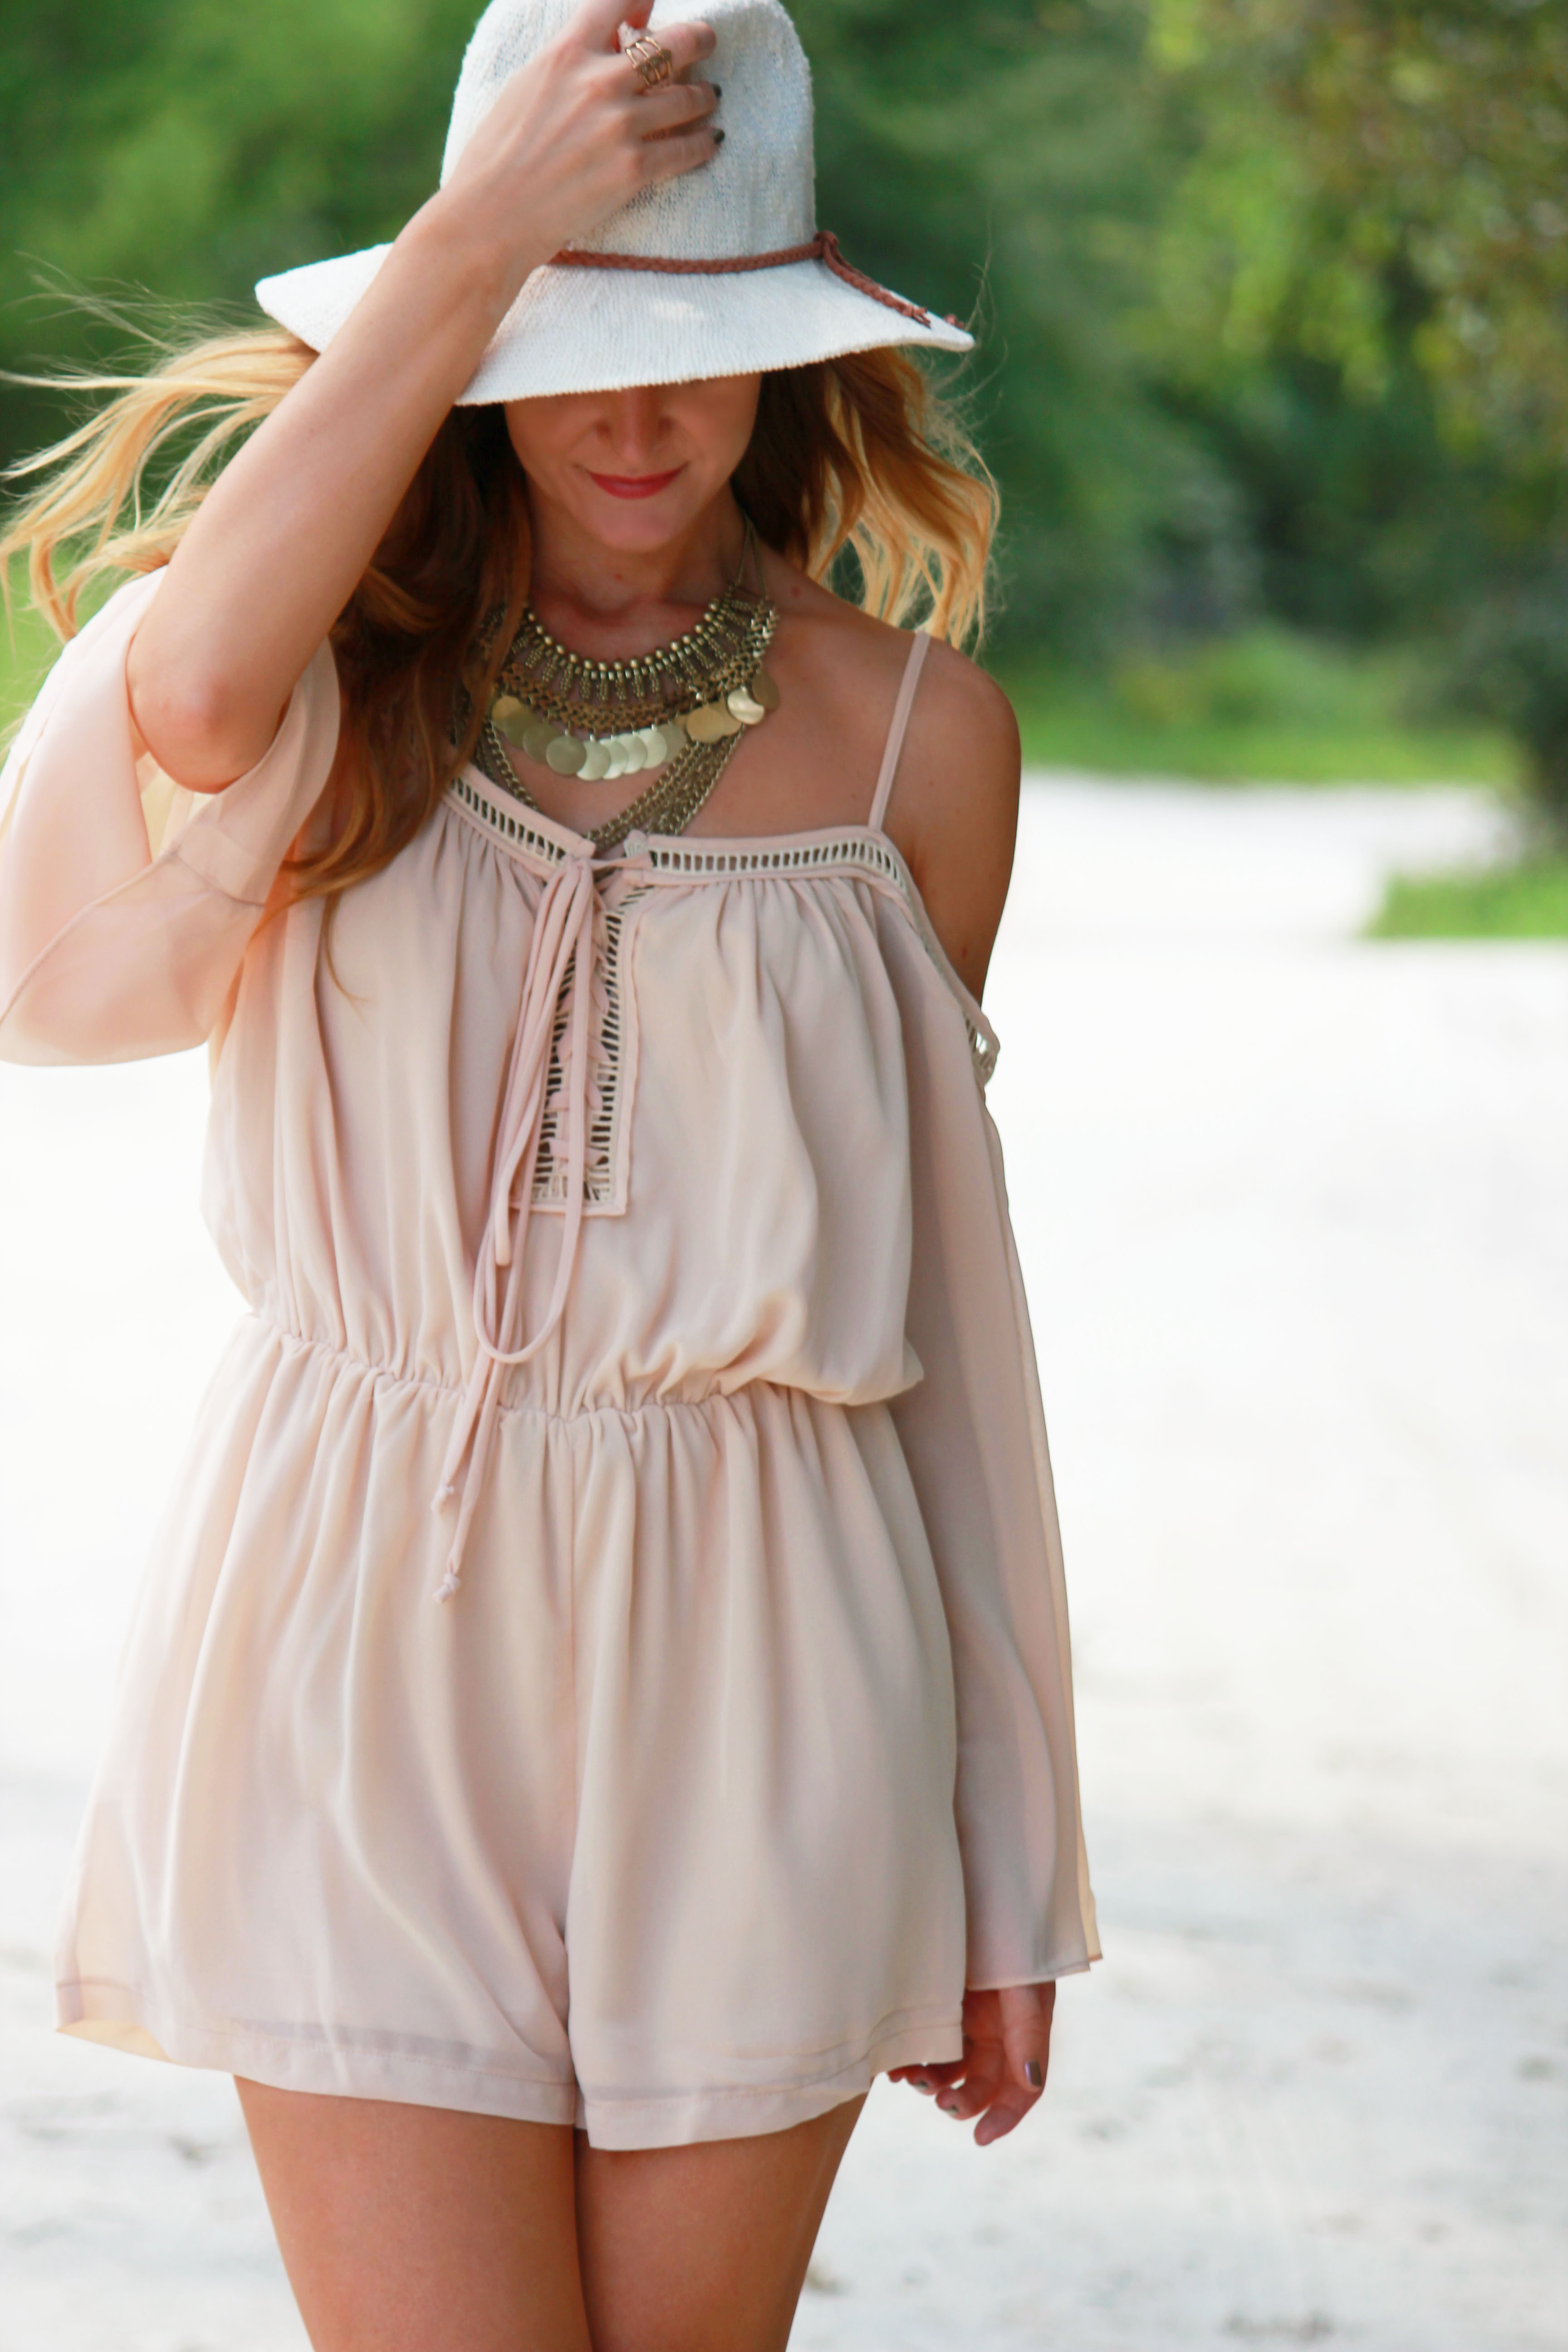 sugar love boutique romper, boho romper, boho chic outfit, bohemian romper, forever 21 necklace, coin necklace, pacsun hat, kendall and kylie collection, dsw boots